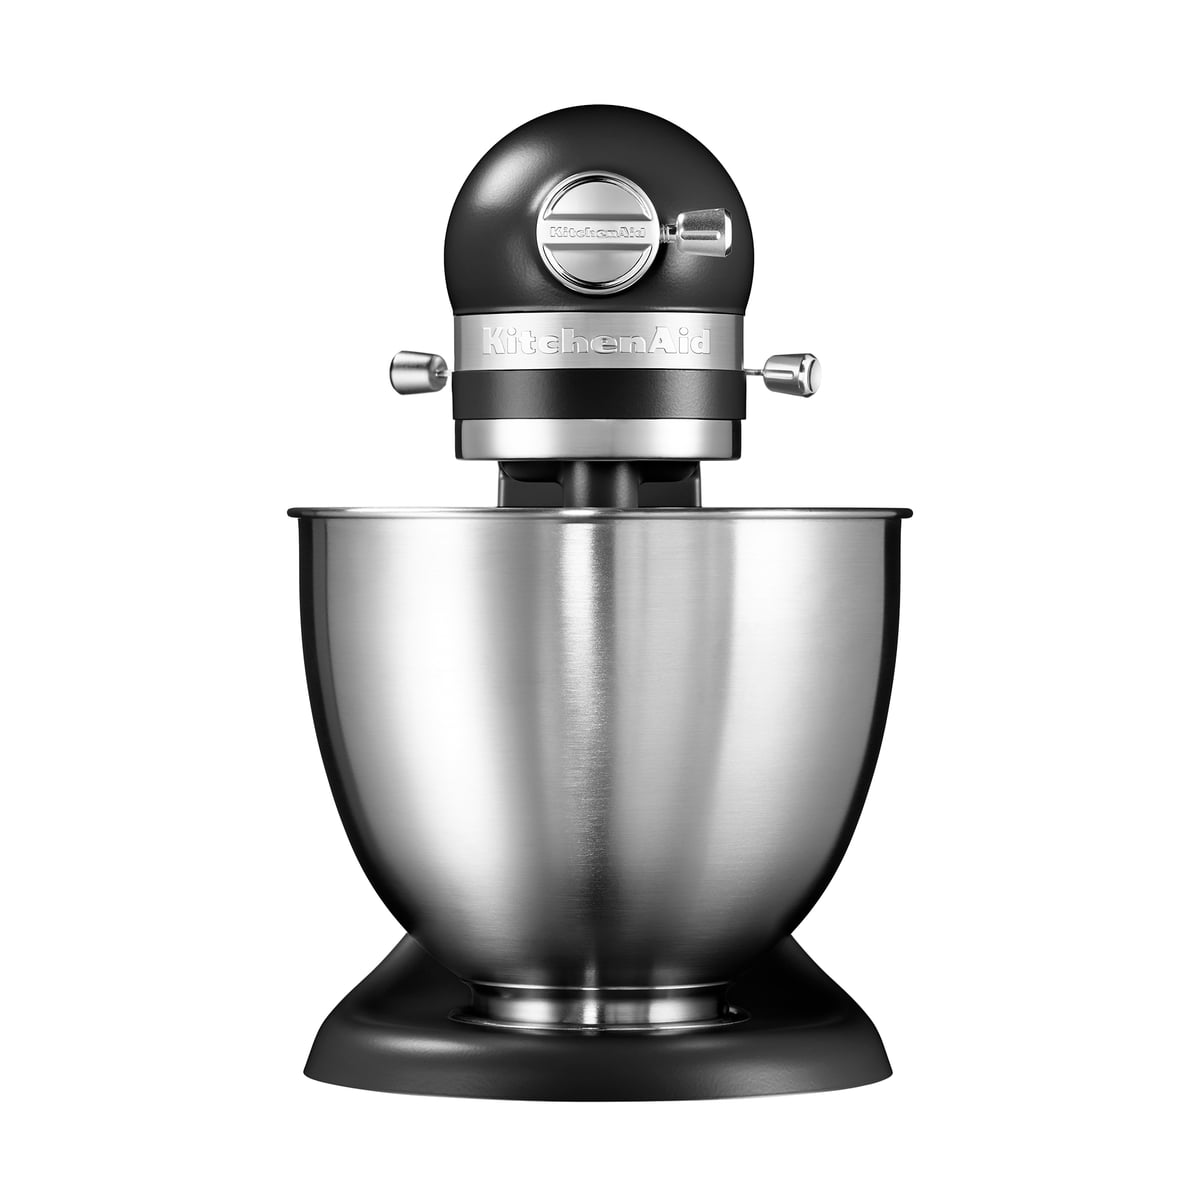 Ordinaire Mini Kitchen Appliance 3.3 L By KitchenAid In Matte Black